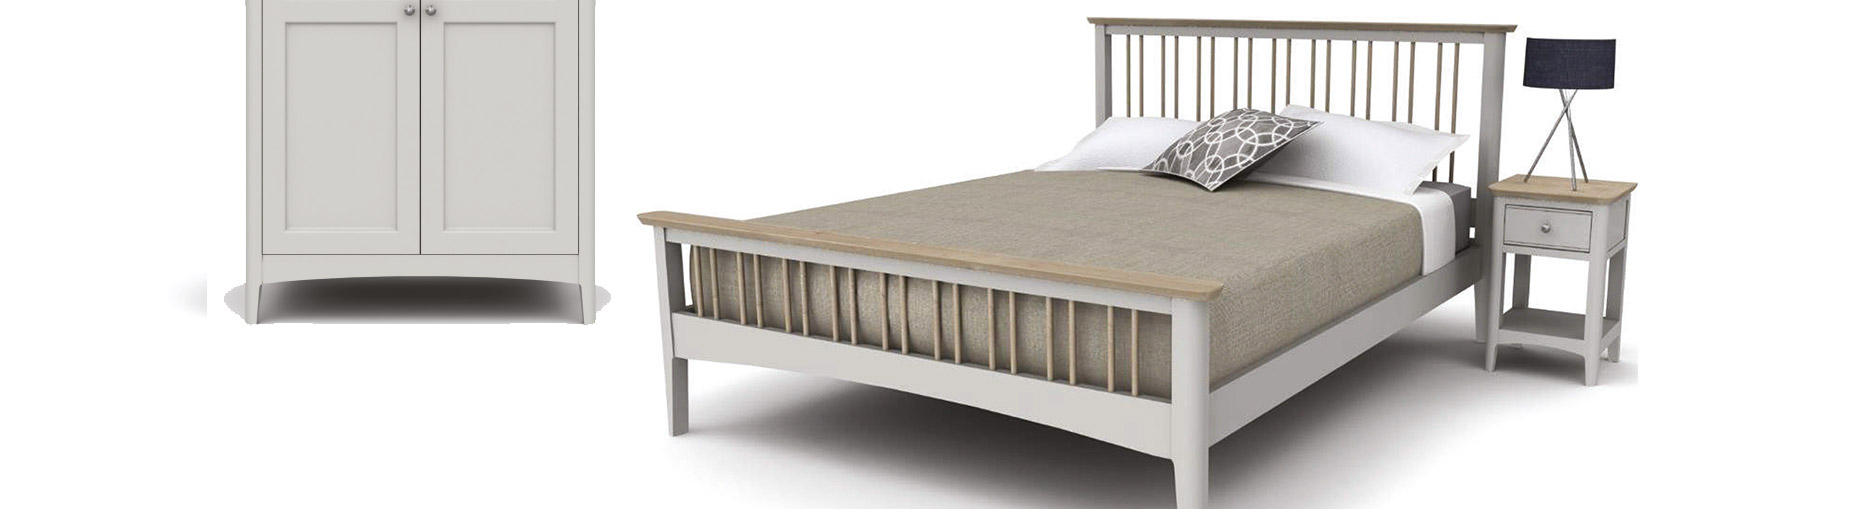 Aria Bedroom collection at Forrest Furnishing